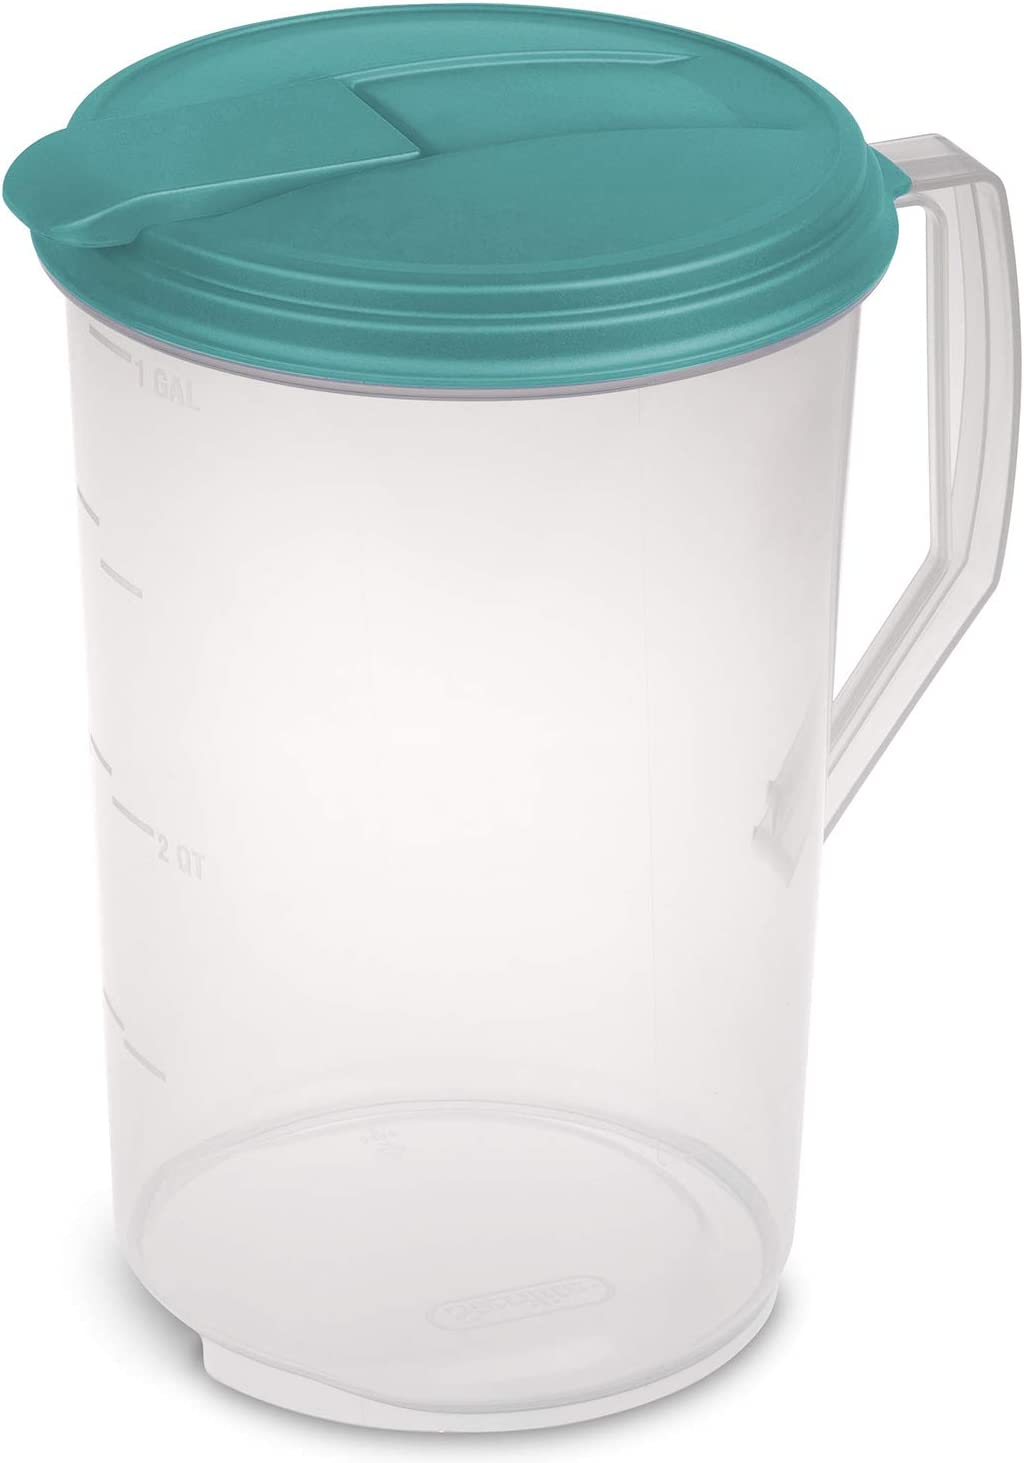 STERILITE 498971 Round Pitcher, Clear & Blue Atoll